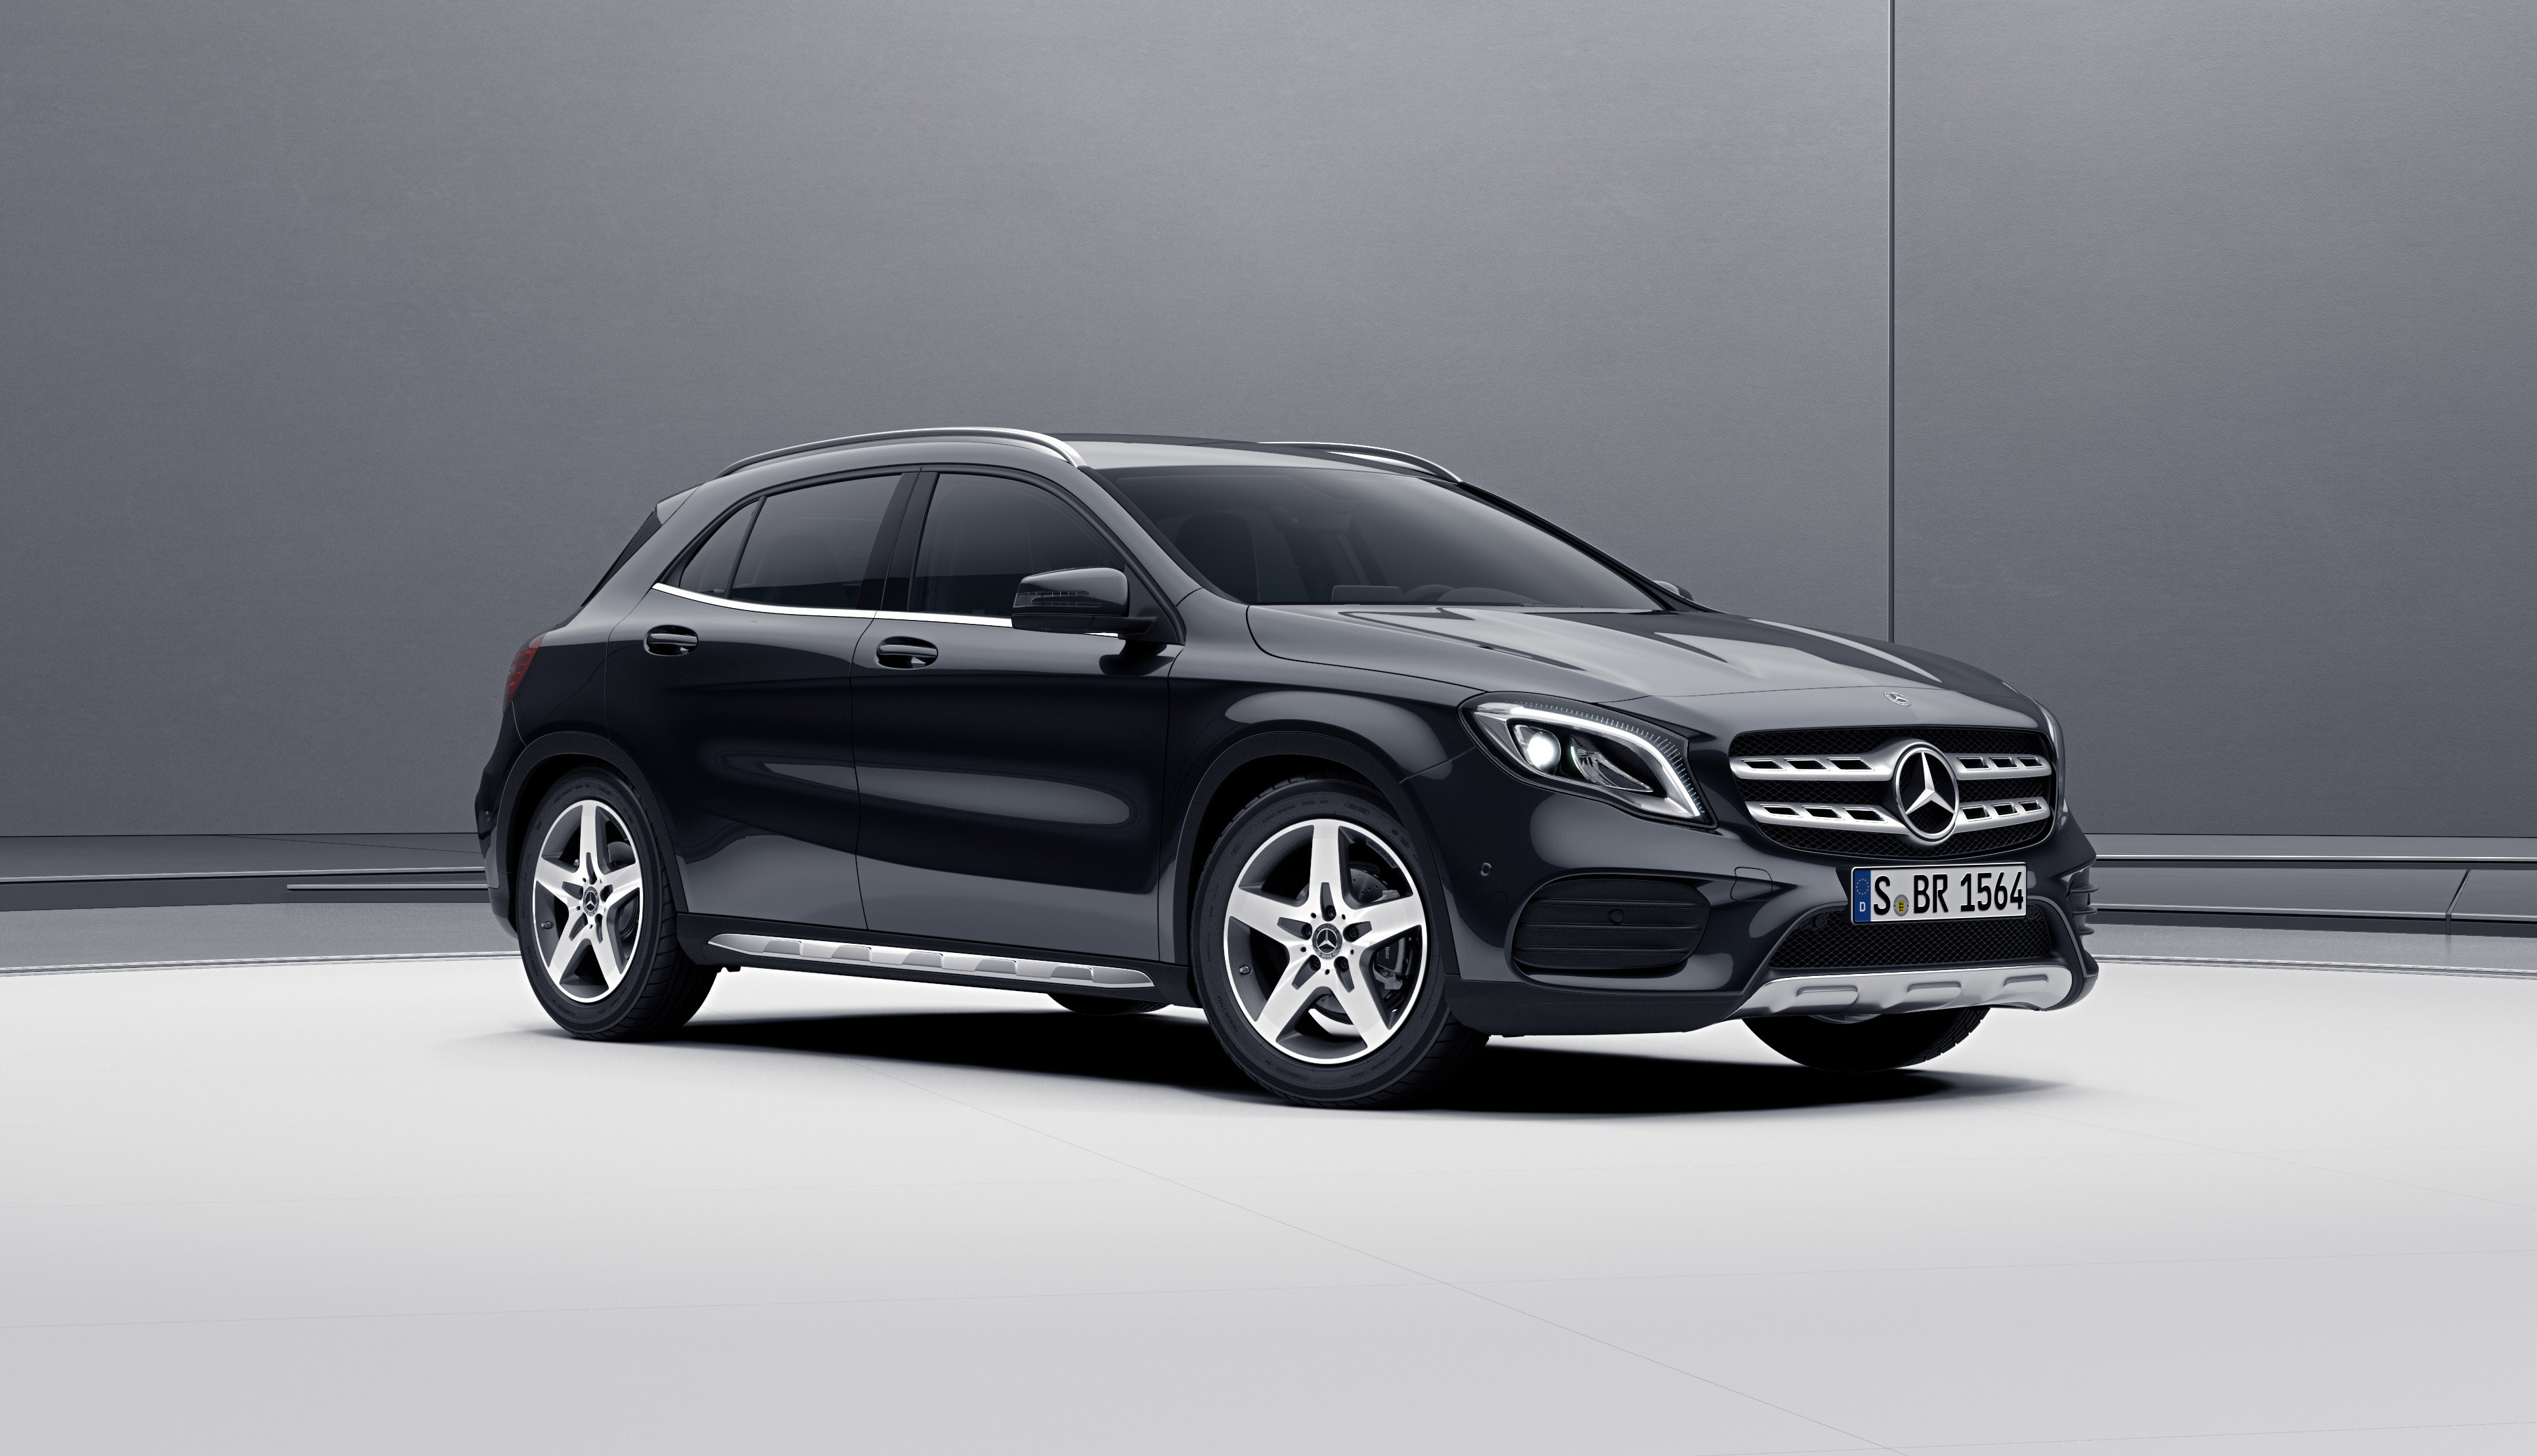 Certified pre owned 2017 mercedes benz gla gla250 suv in for Black owned mercedes benz dealerships